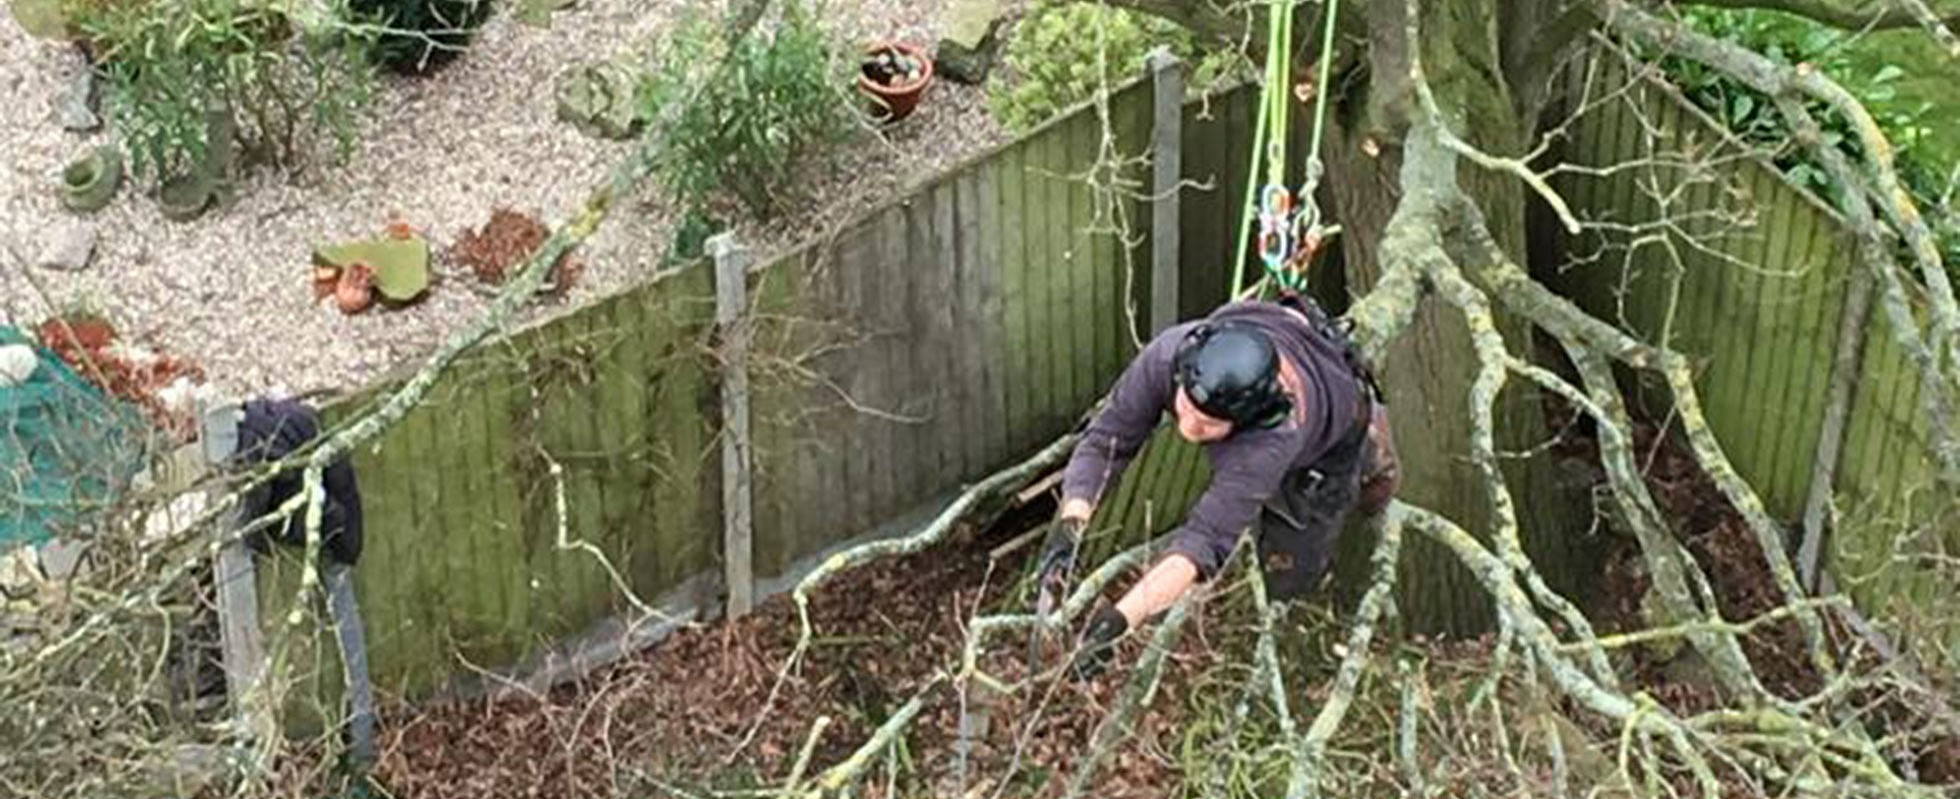 Andrew of Andrew's Arboriculture pruning a tree using a rope and pulley system, this means the job is done safely.